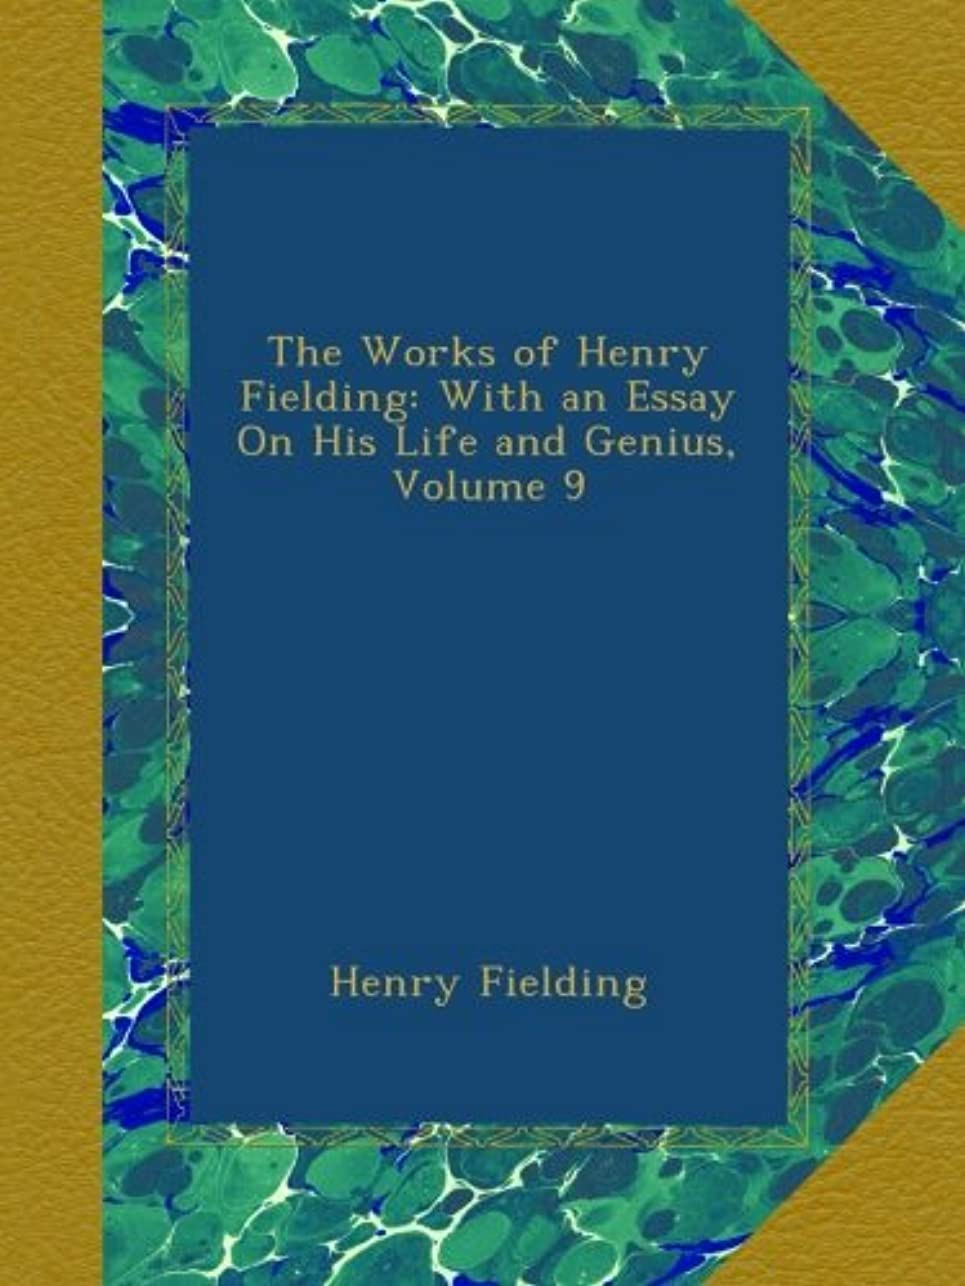 スチュワードすることになっている詳細なThe Works of Henry Fielding: With an Essay On His Life and Genius, Volume 9